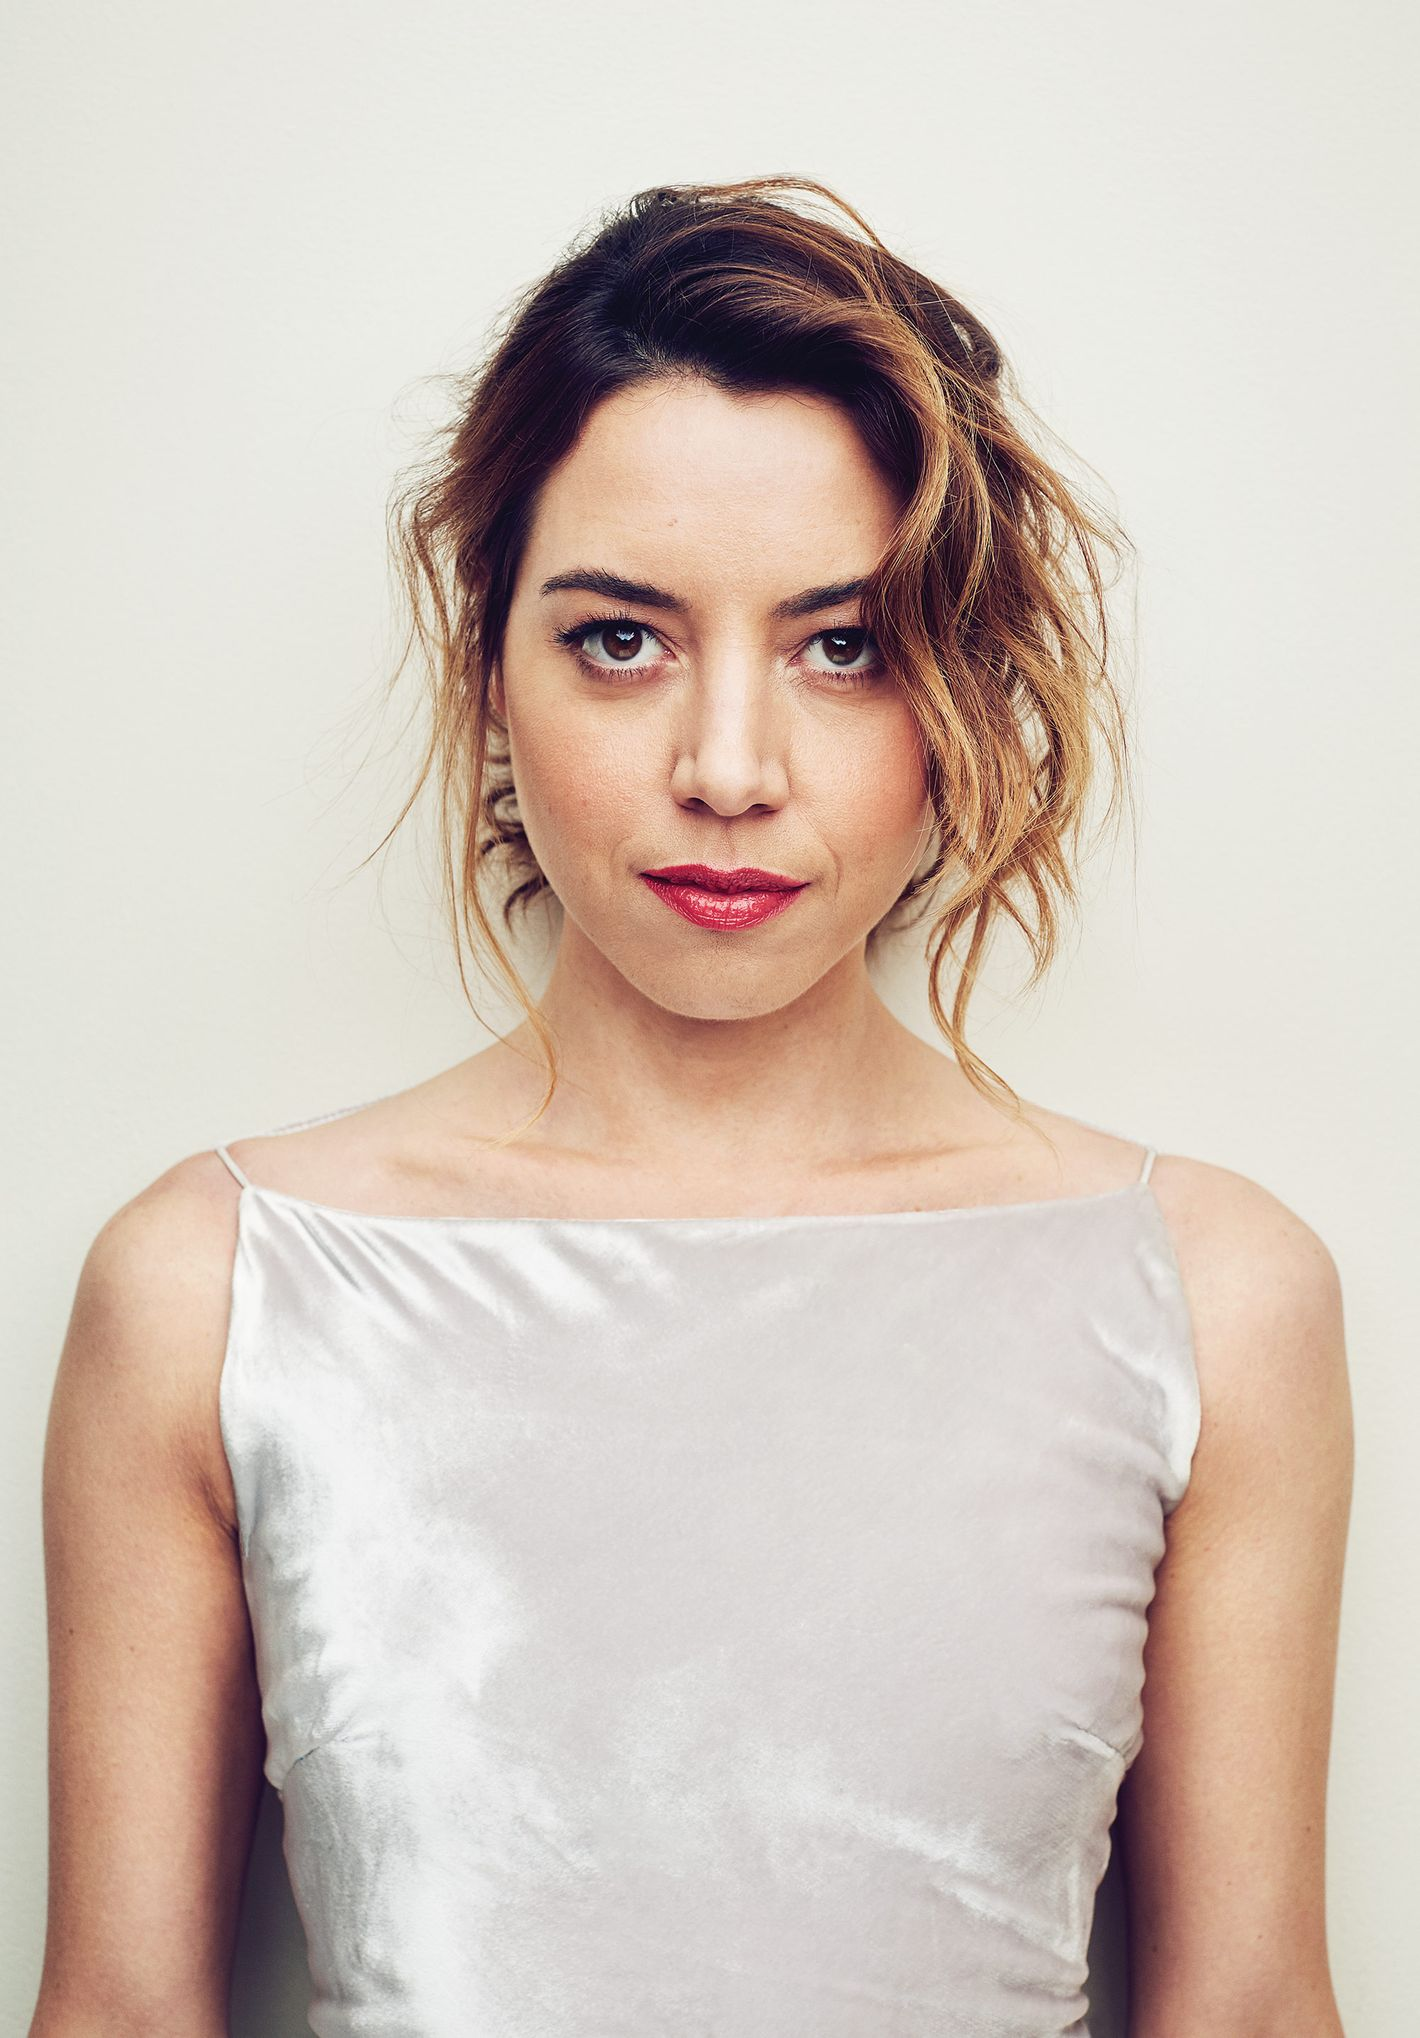 image Aubrey plaza the to do list